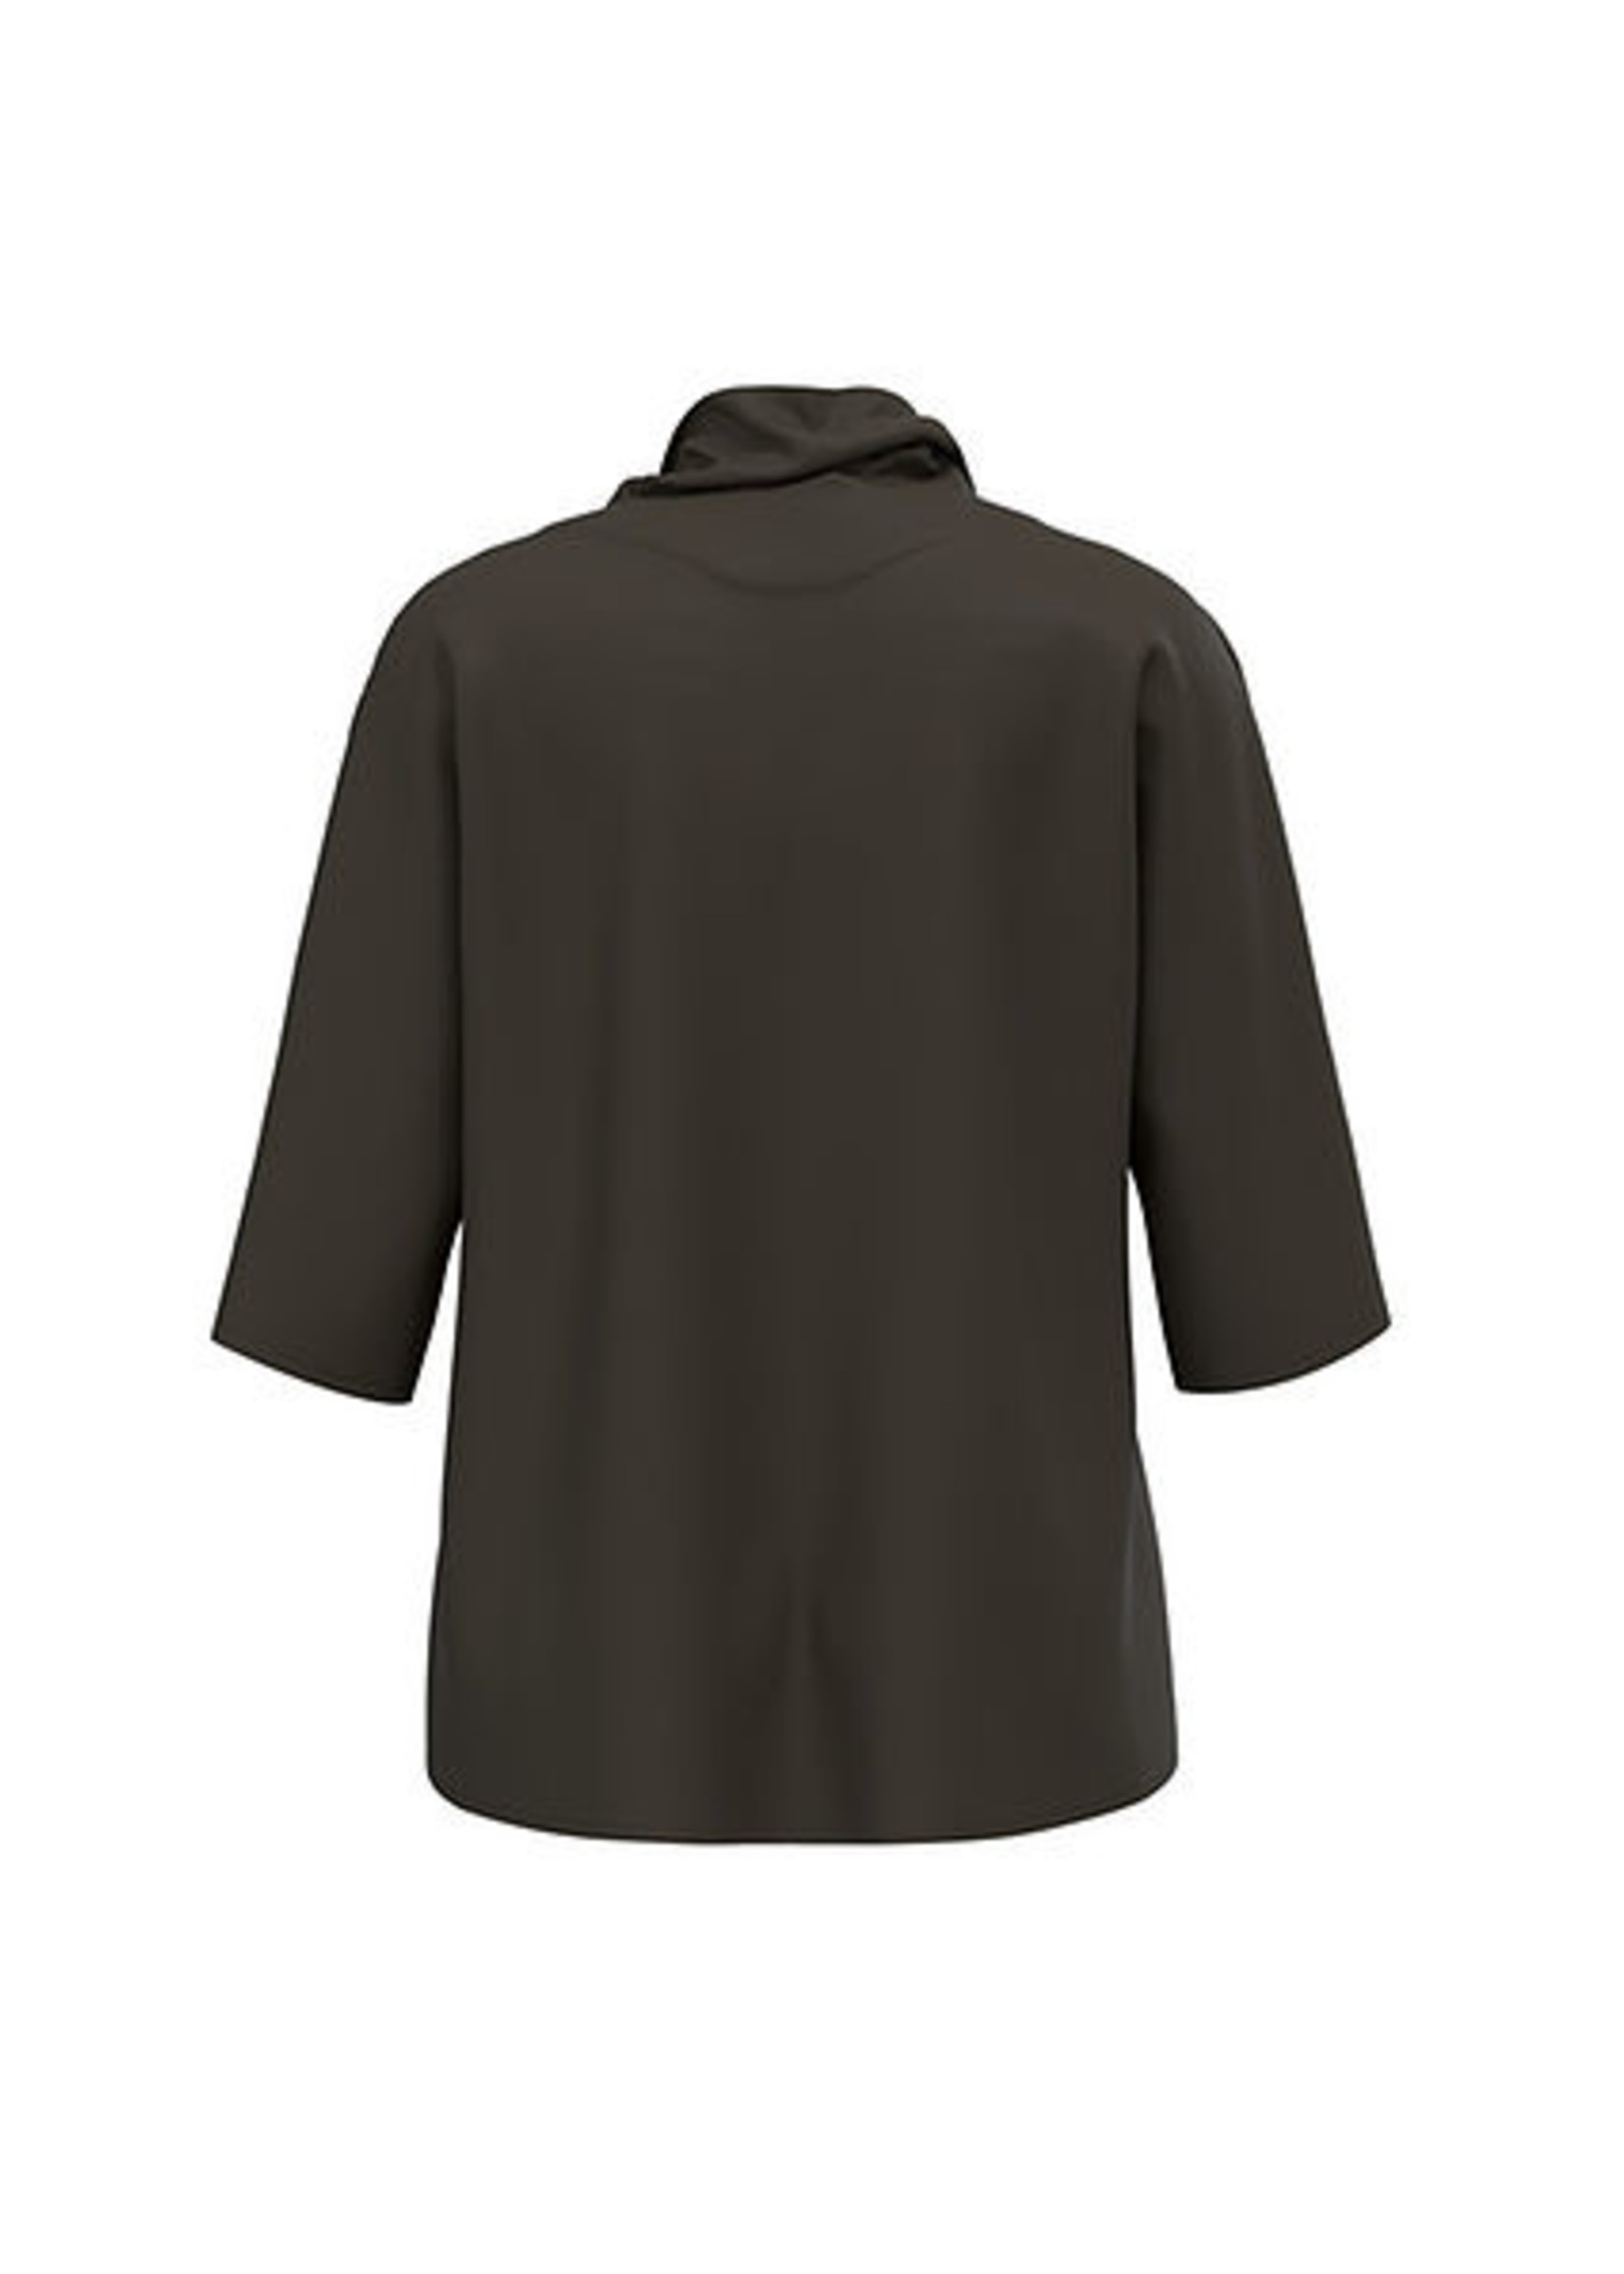 Marccain Sports Blouse RS 55.22 W84 olive drab